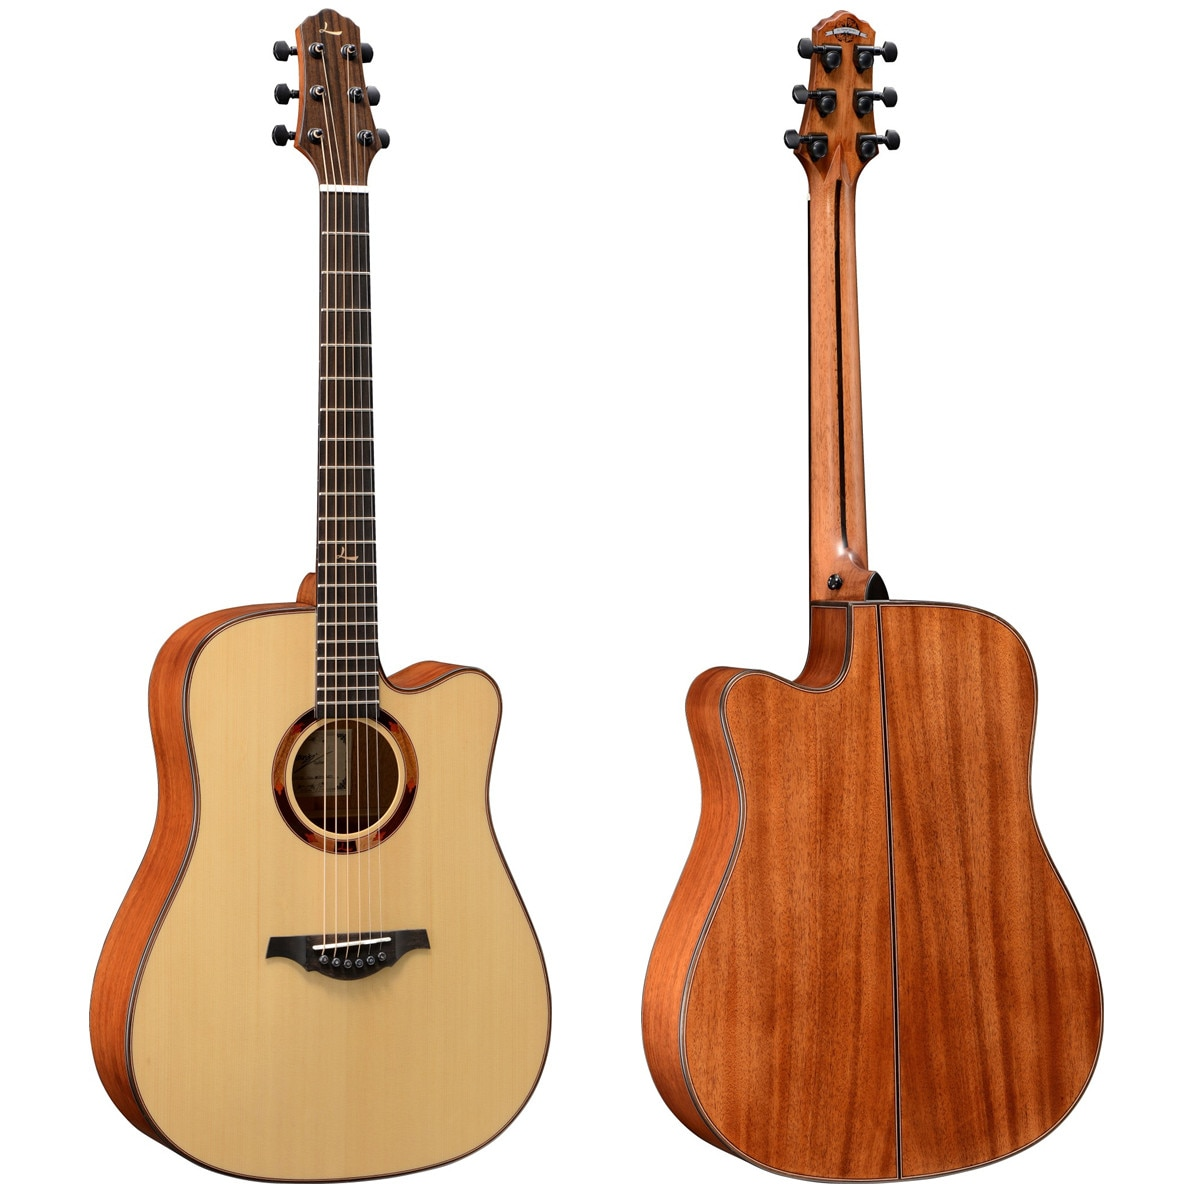 LeChant LS-DC30 Cutaway Solid Spruce Top Acoustic Guitar with Mahogany Back And Sides 41 Inches Guitarra for Practice